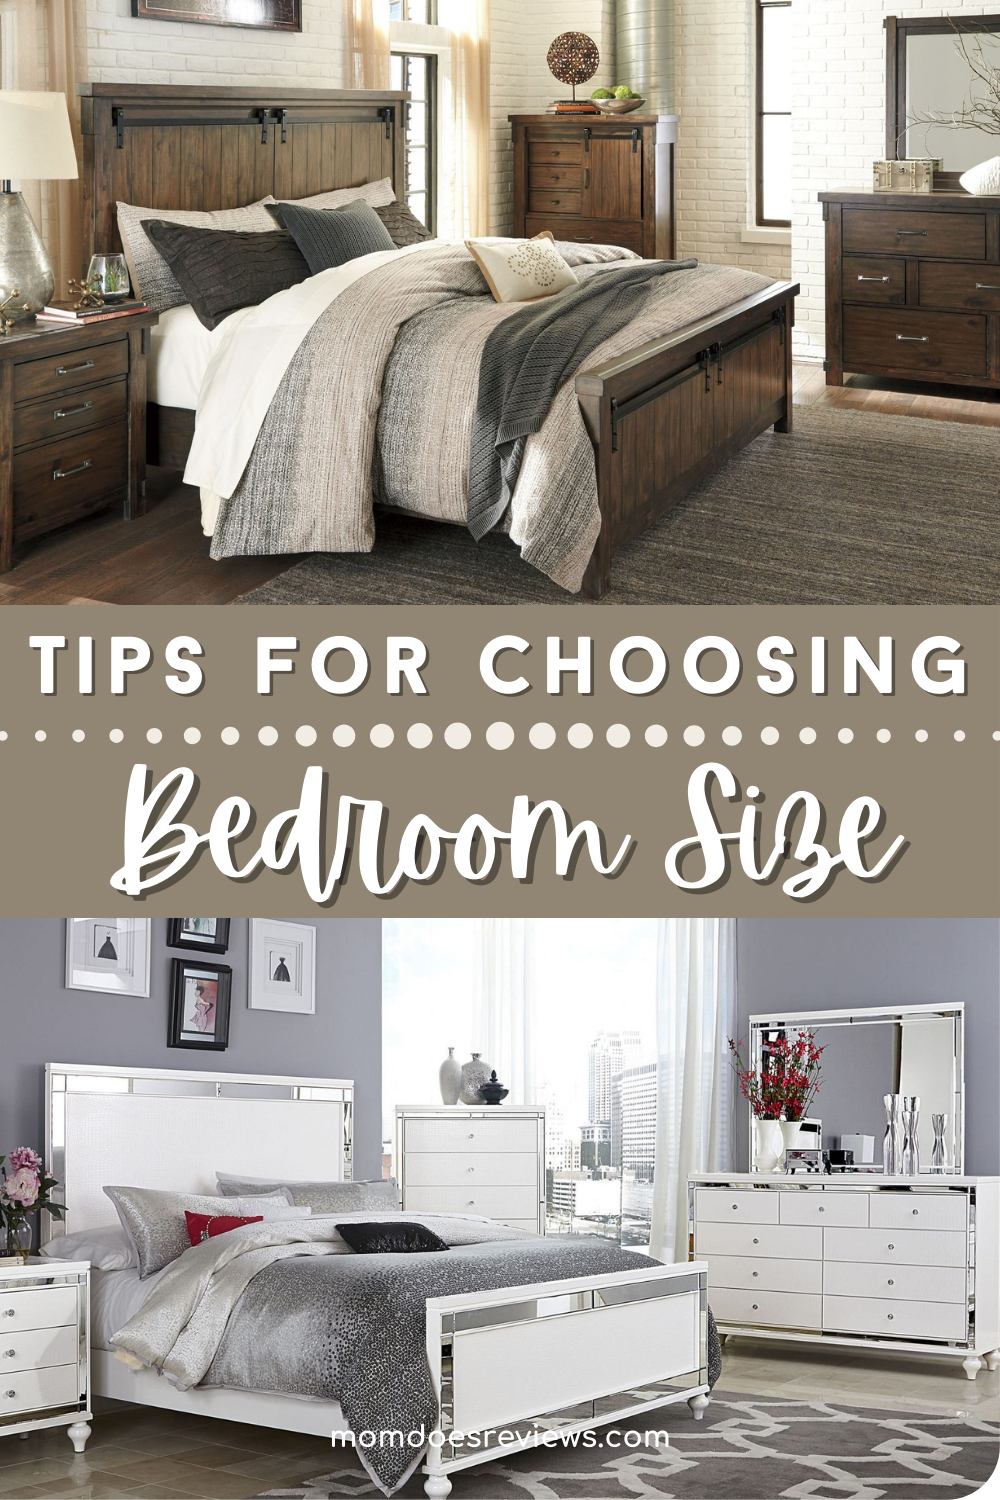 Ideal Bedroom Size to Accommodate a Complete Bedroom Set